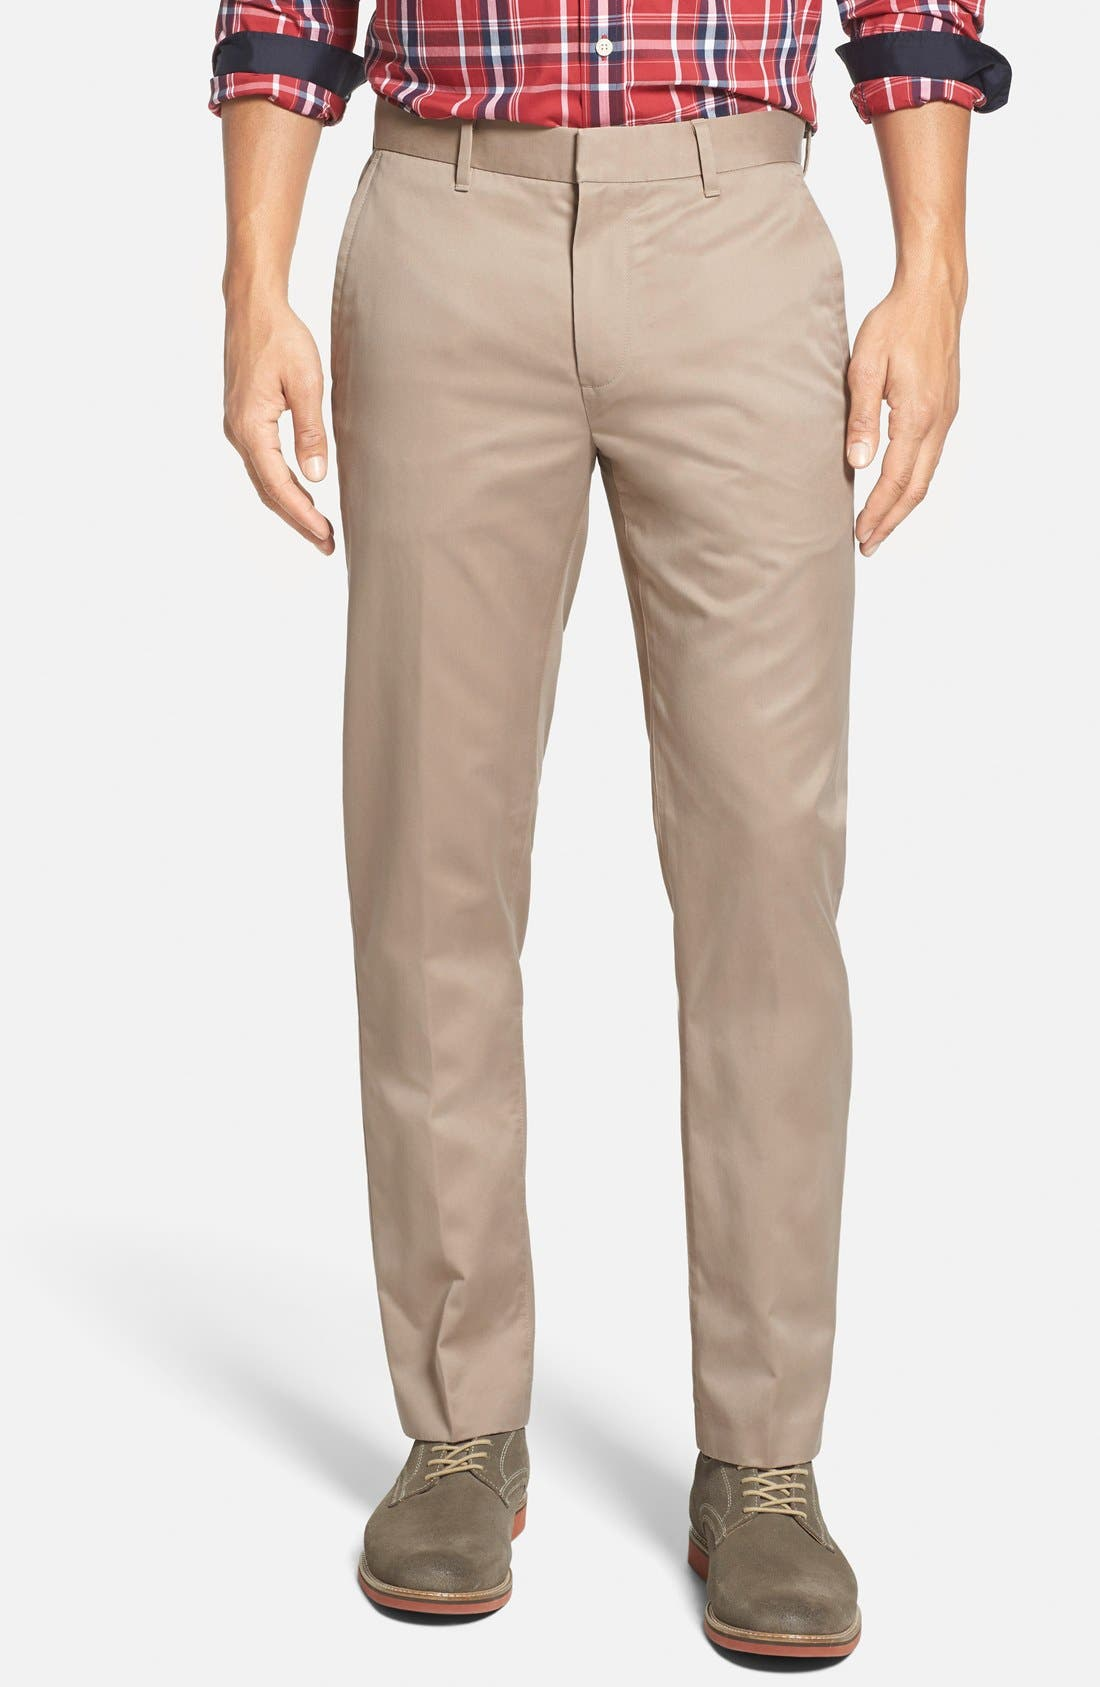 Bonobos 'Weekday Warriors' Non-Iron Tailored Cotton Chinos